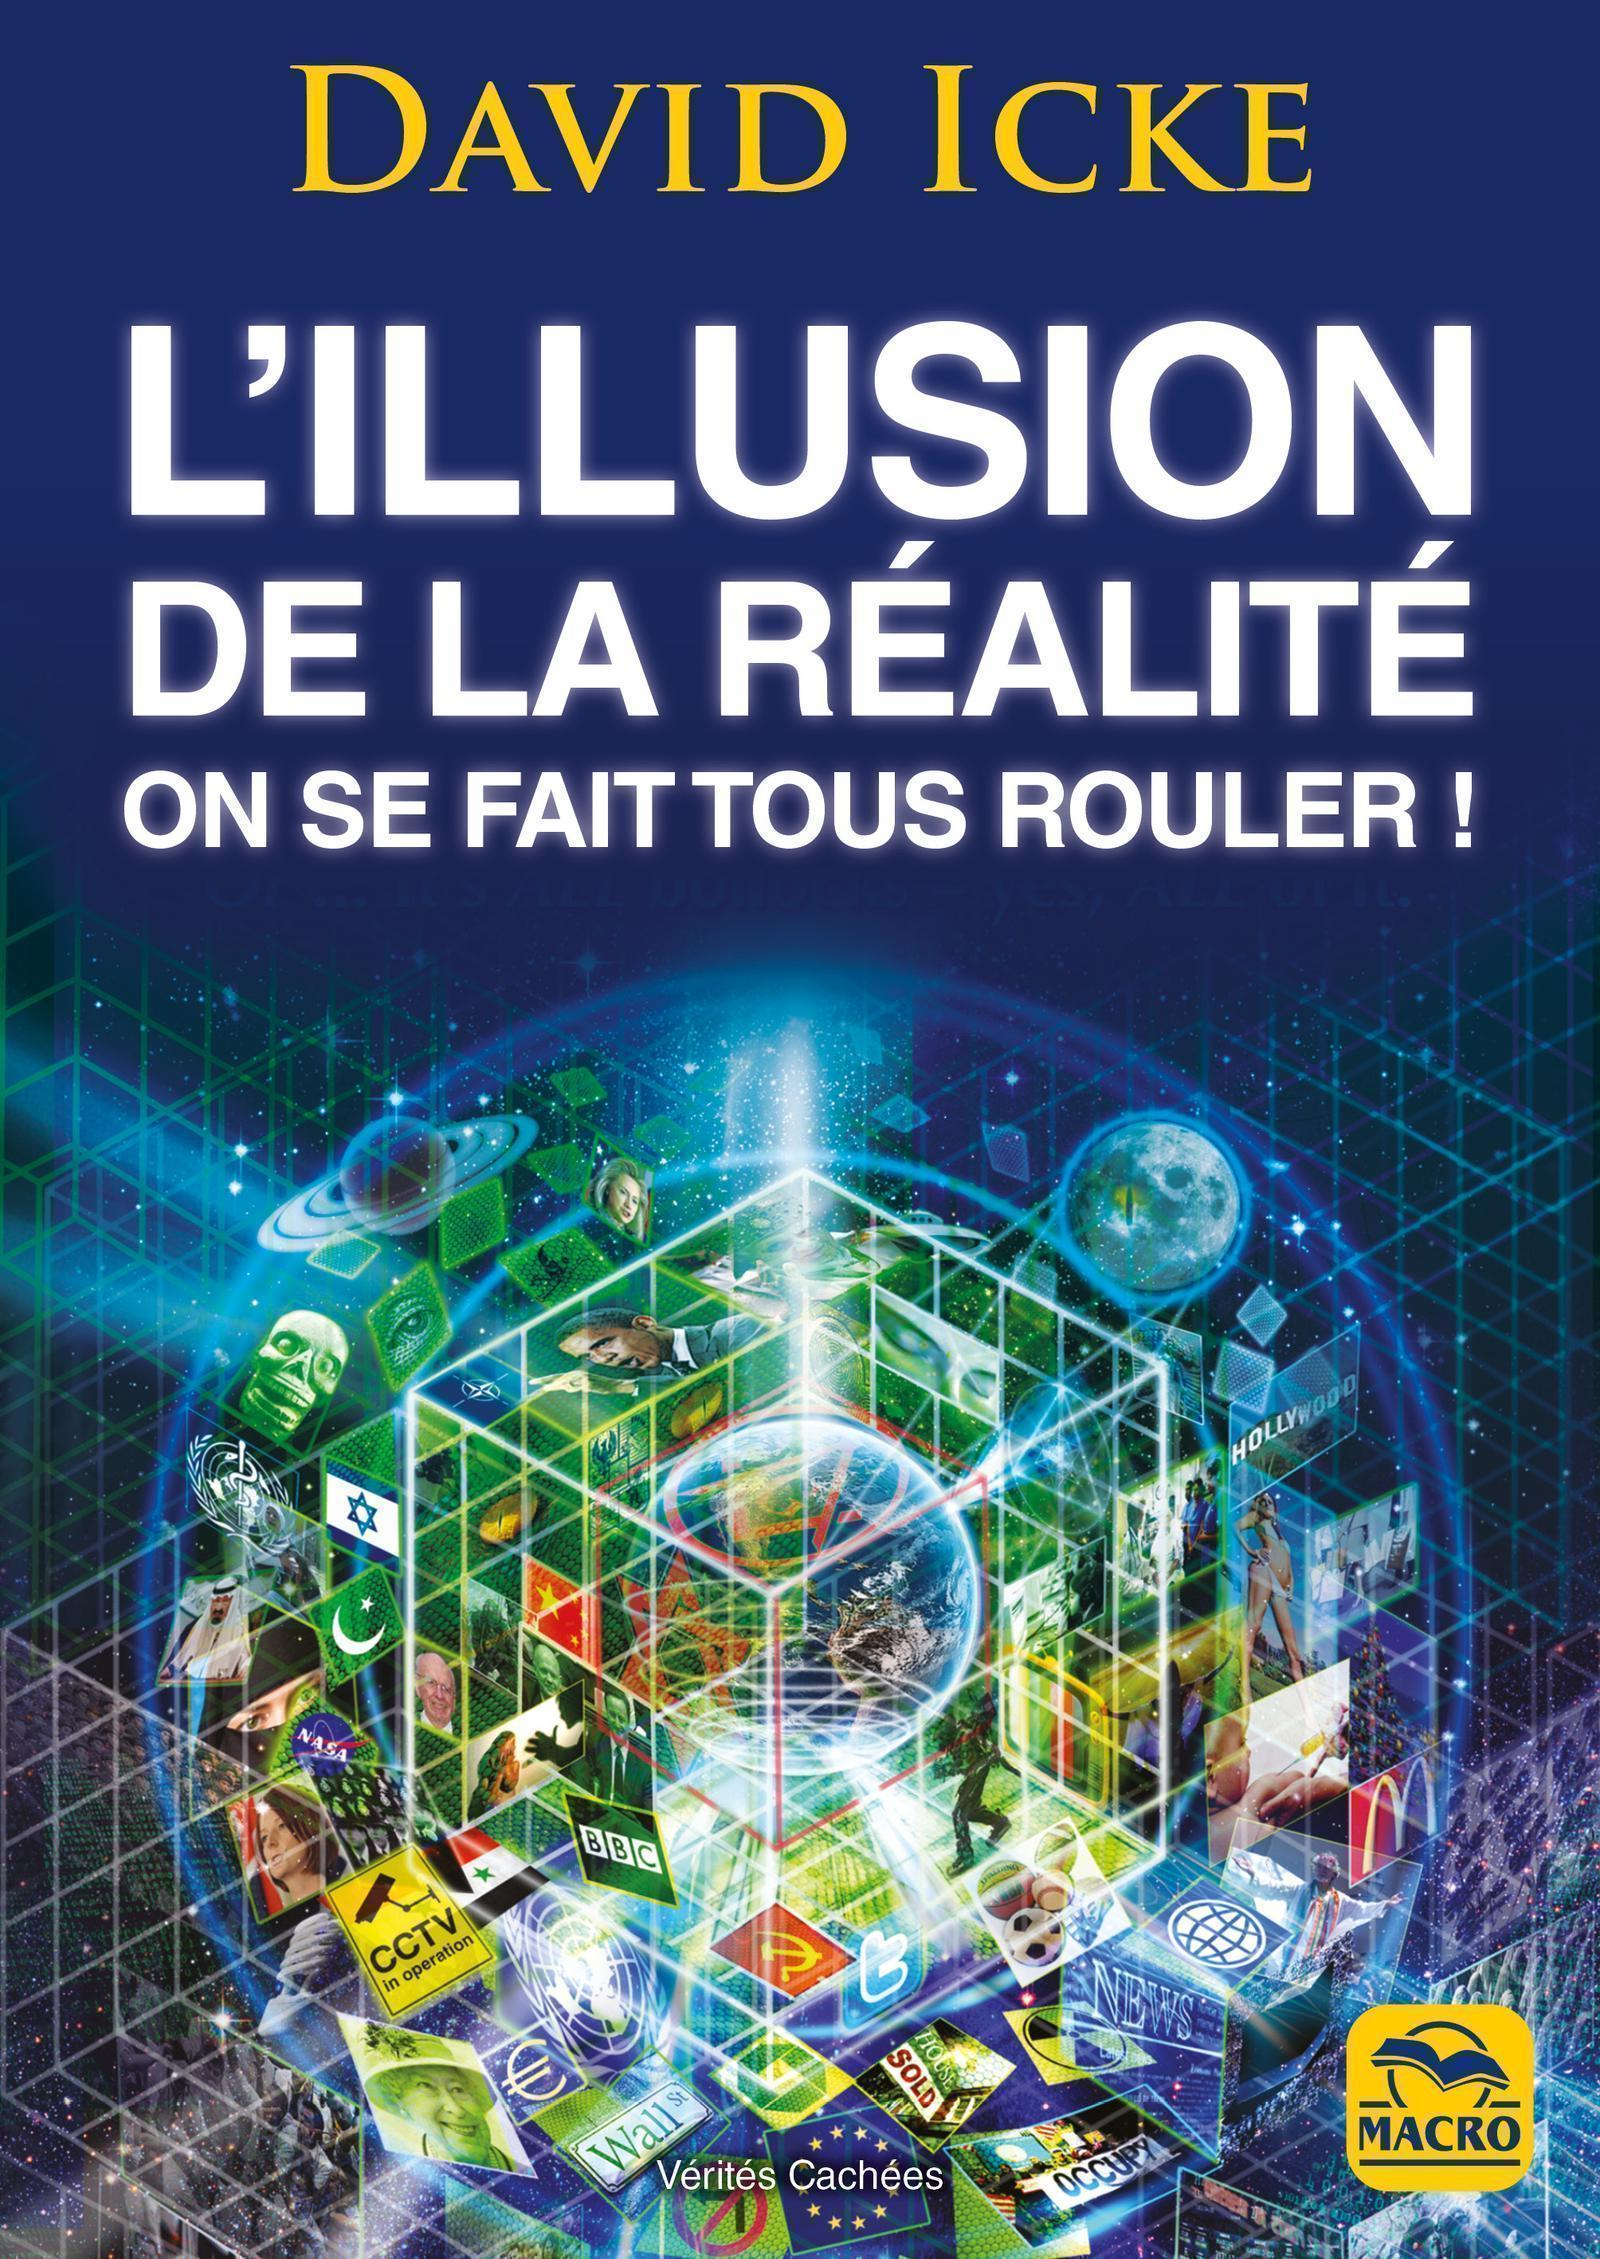 L ILLUSION DE LA REALITE  ON SE FAIT TOUS ROULER  LES REVELATIONS LES PLUS COMP - LES REVELATIONS L